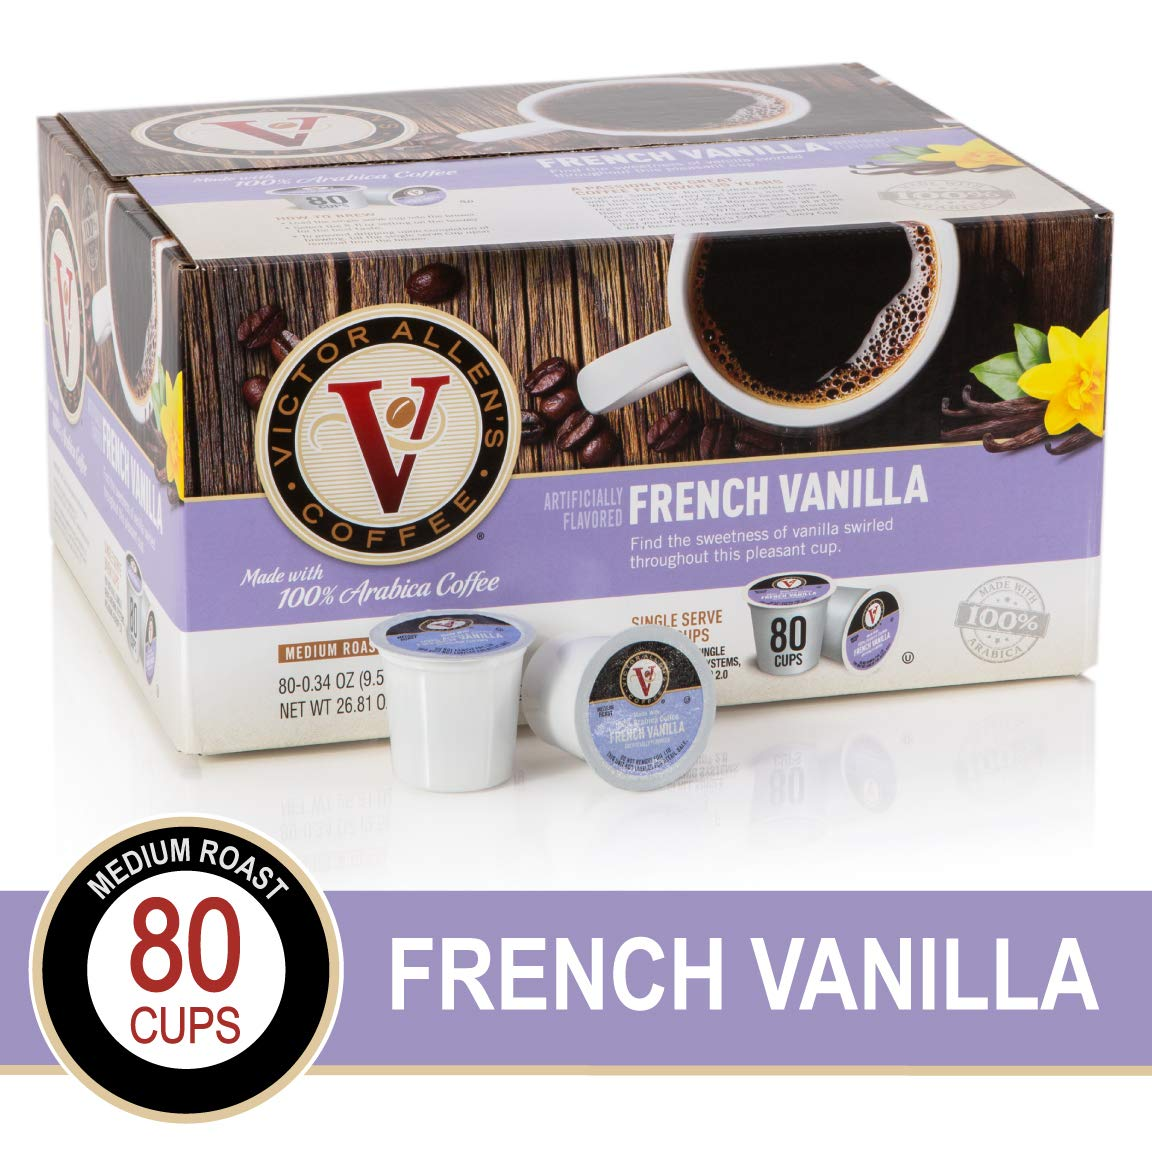 French Vanilla for K-Cup Keurig 2.0 Brewers, 80 Count, Victor Allen's Coffee Medium Roast Single Serve Coffee Pods by Victor Allen